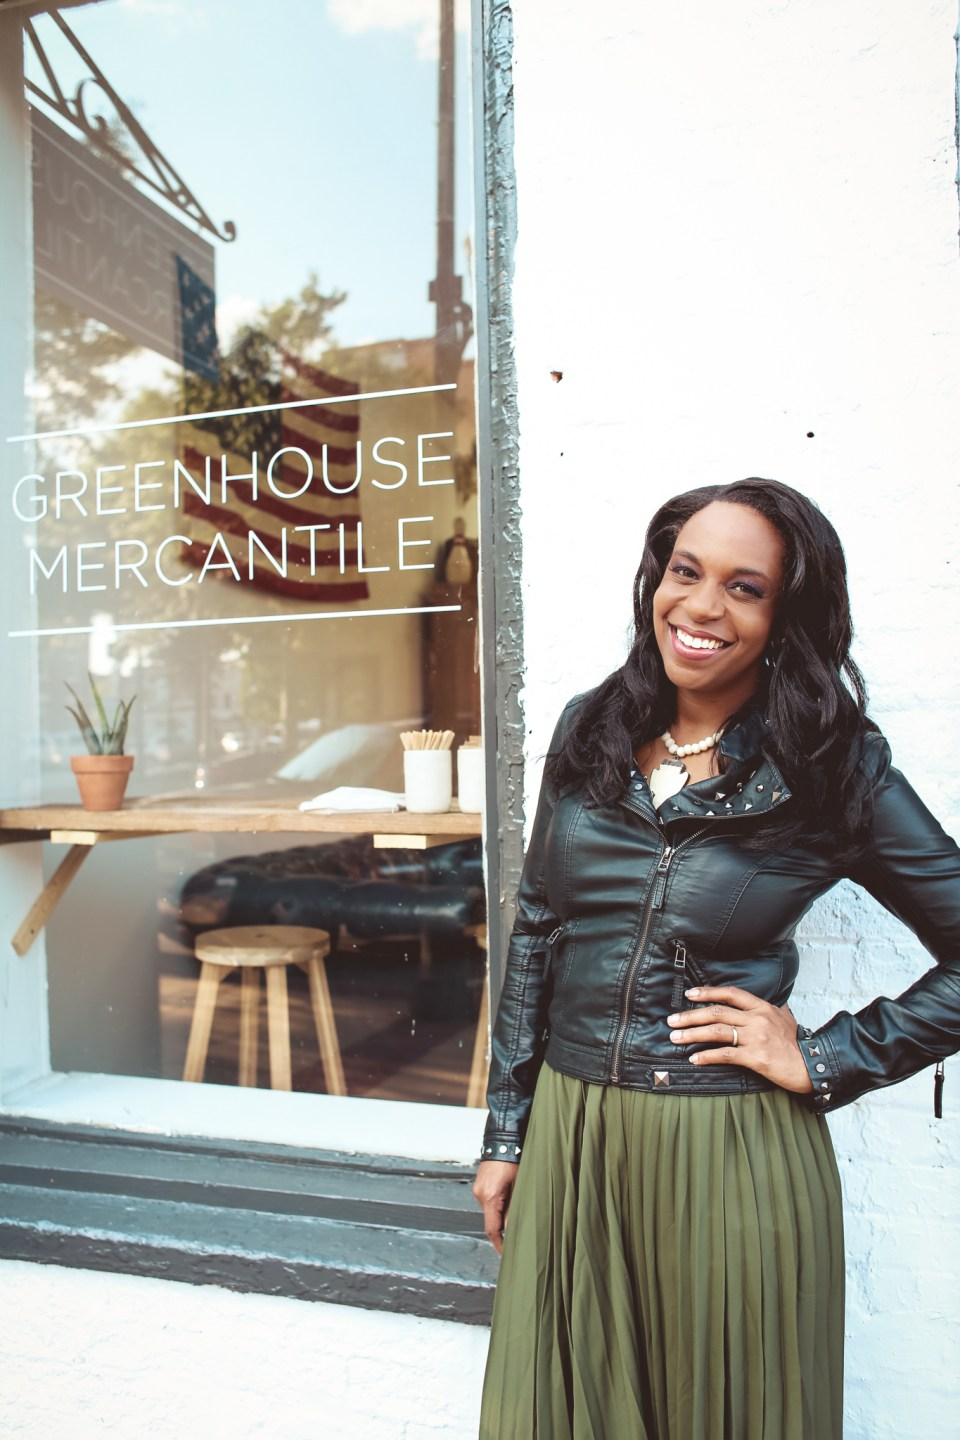 Newnan, GA Shop Owner and The Story Behind Greenhouse Mercantile